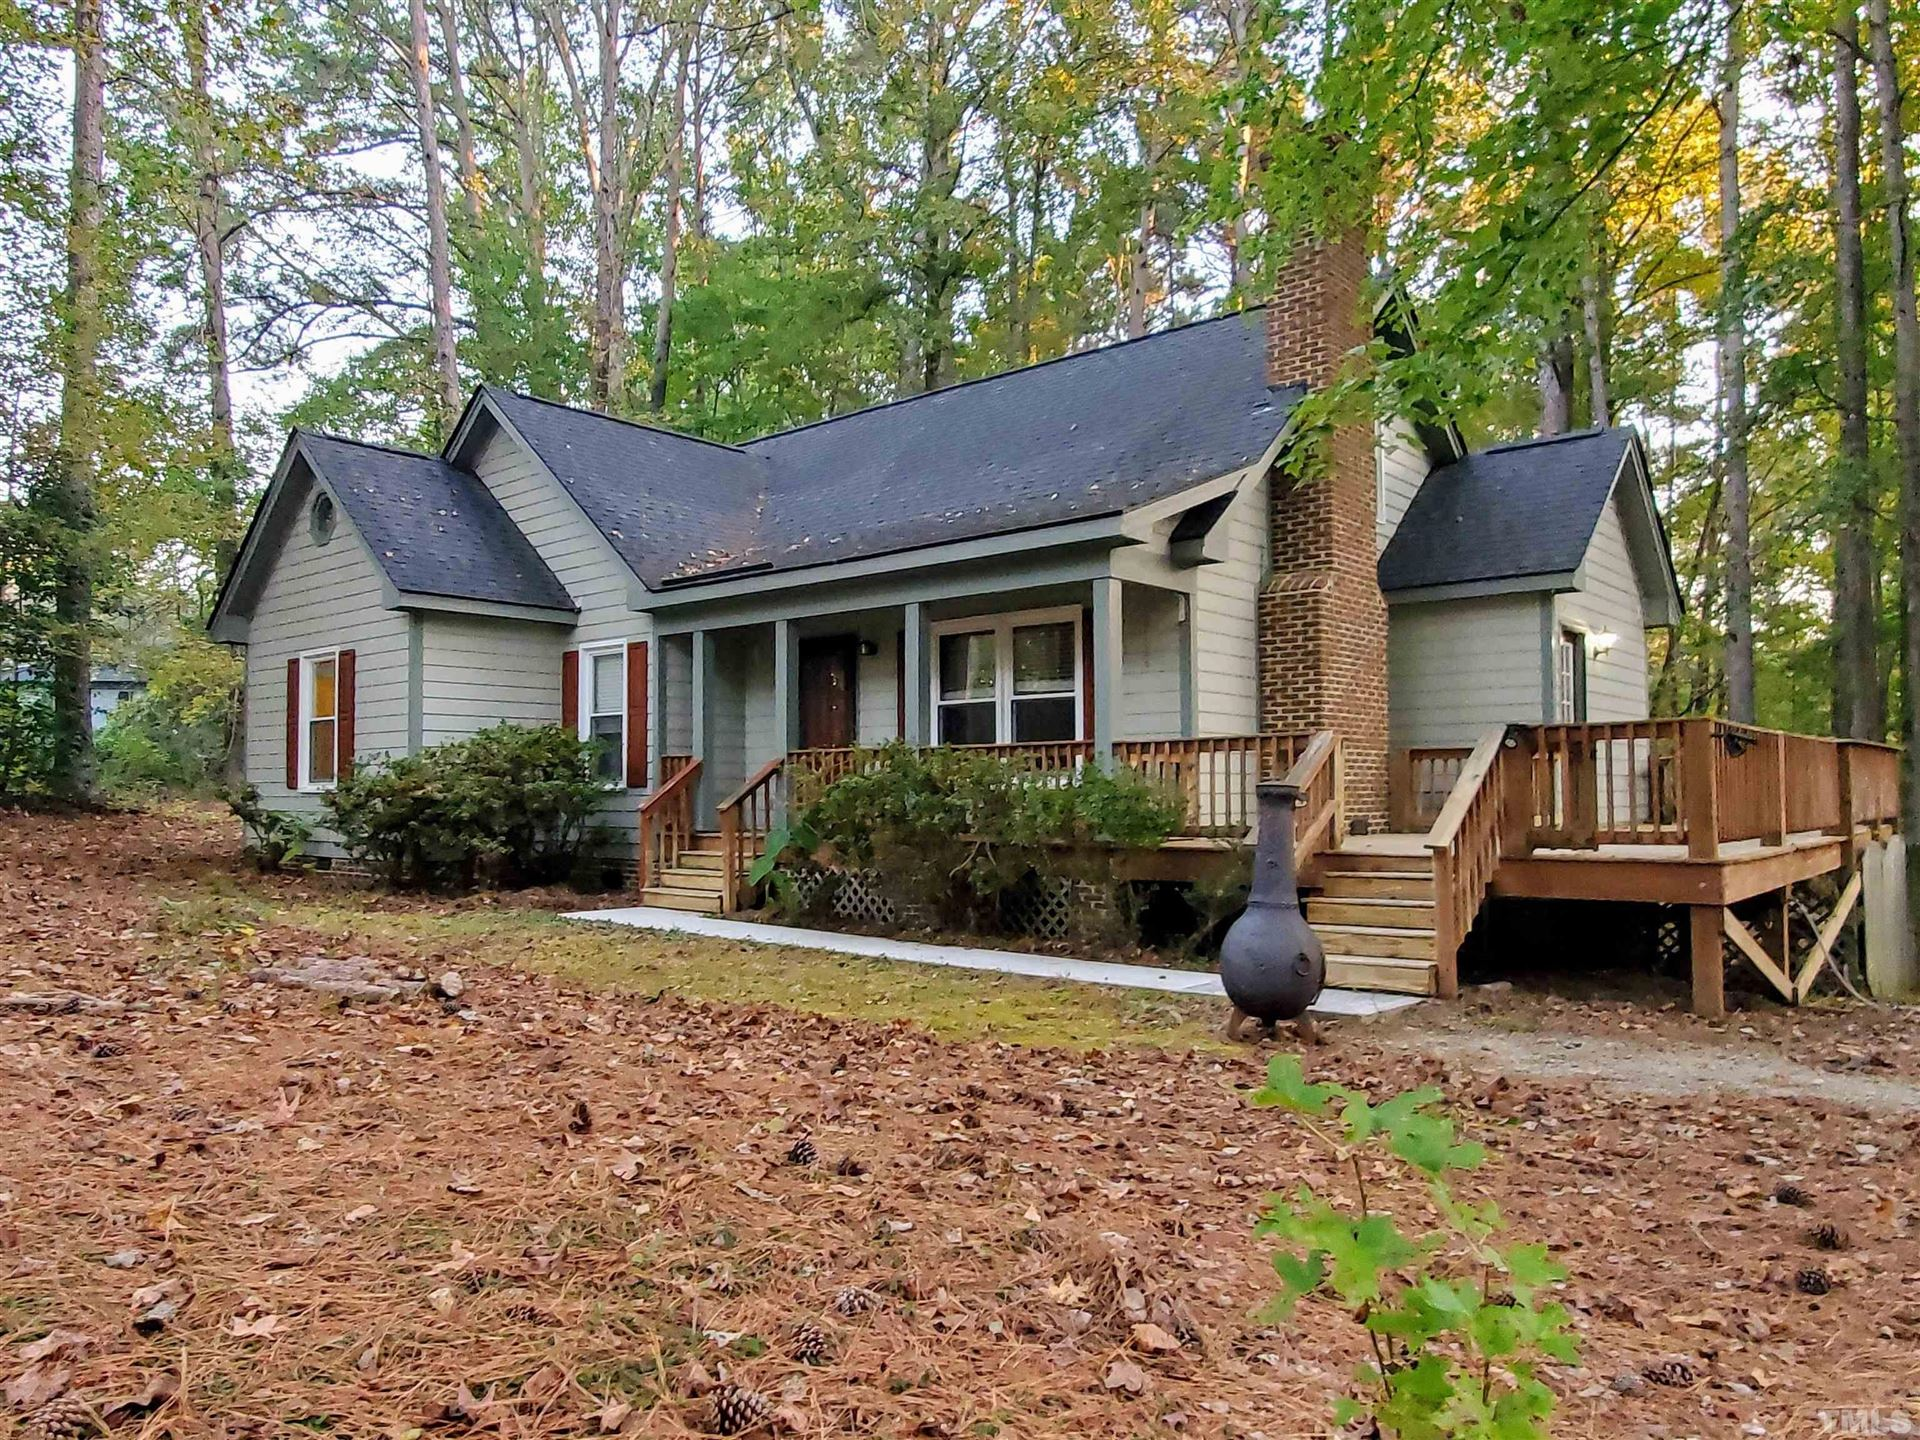 Photo of 8801 Valley Hill Court, Apex, NC 27539-7077 (MLS # 2415790)